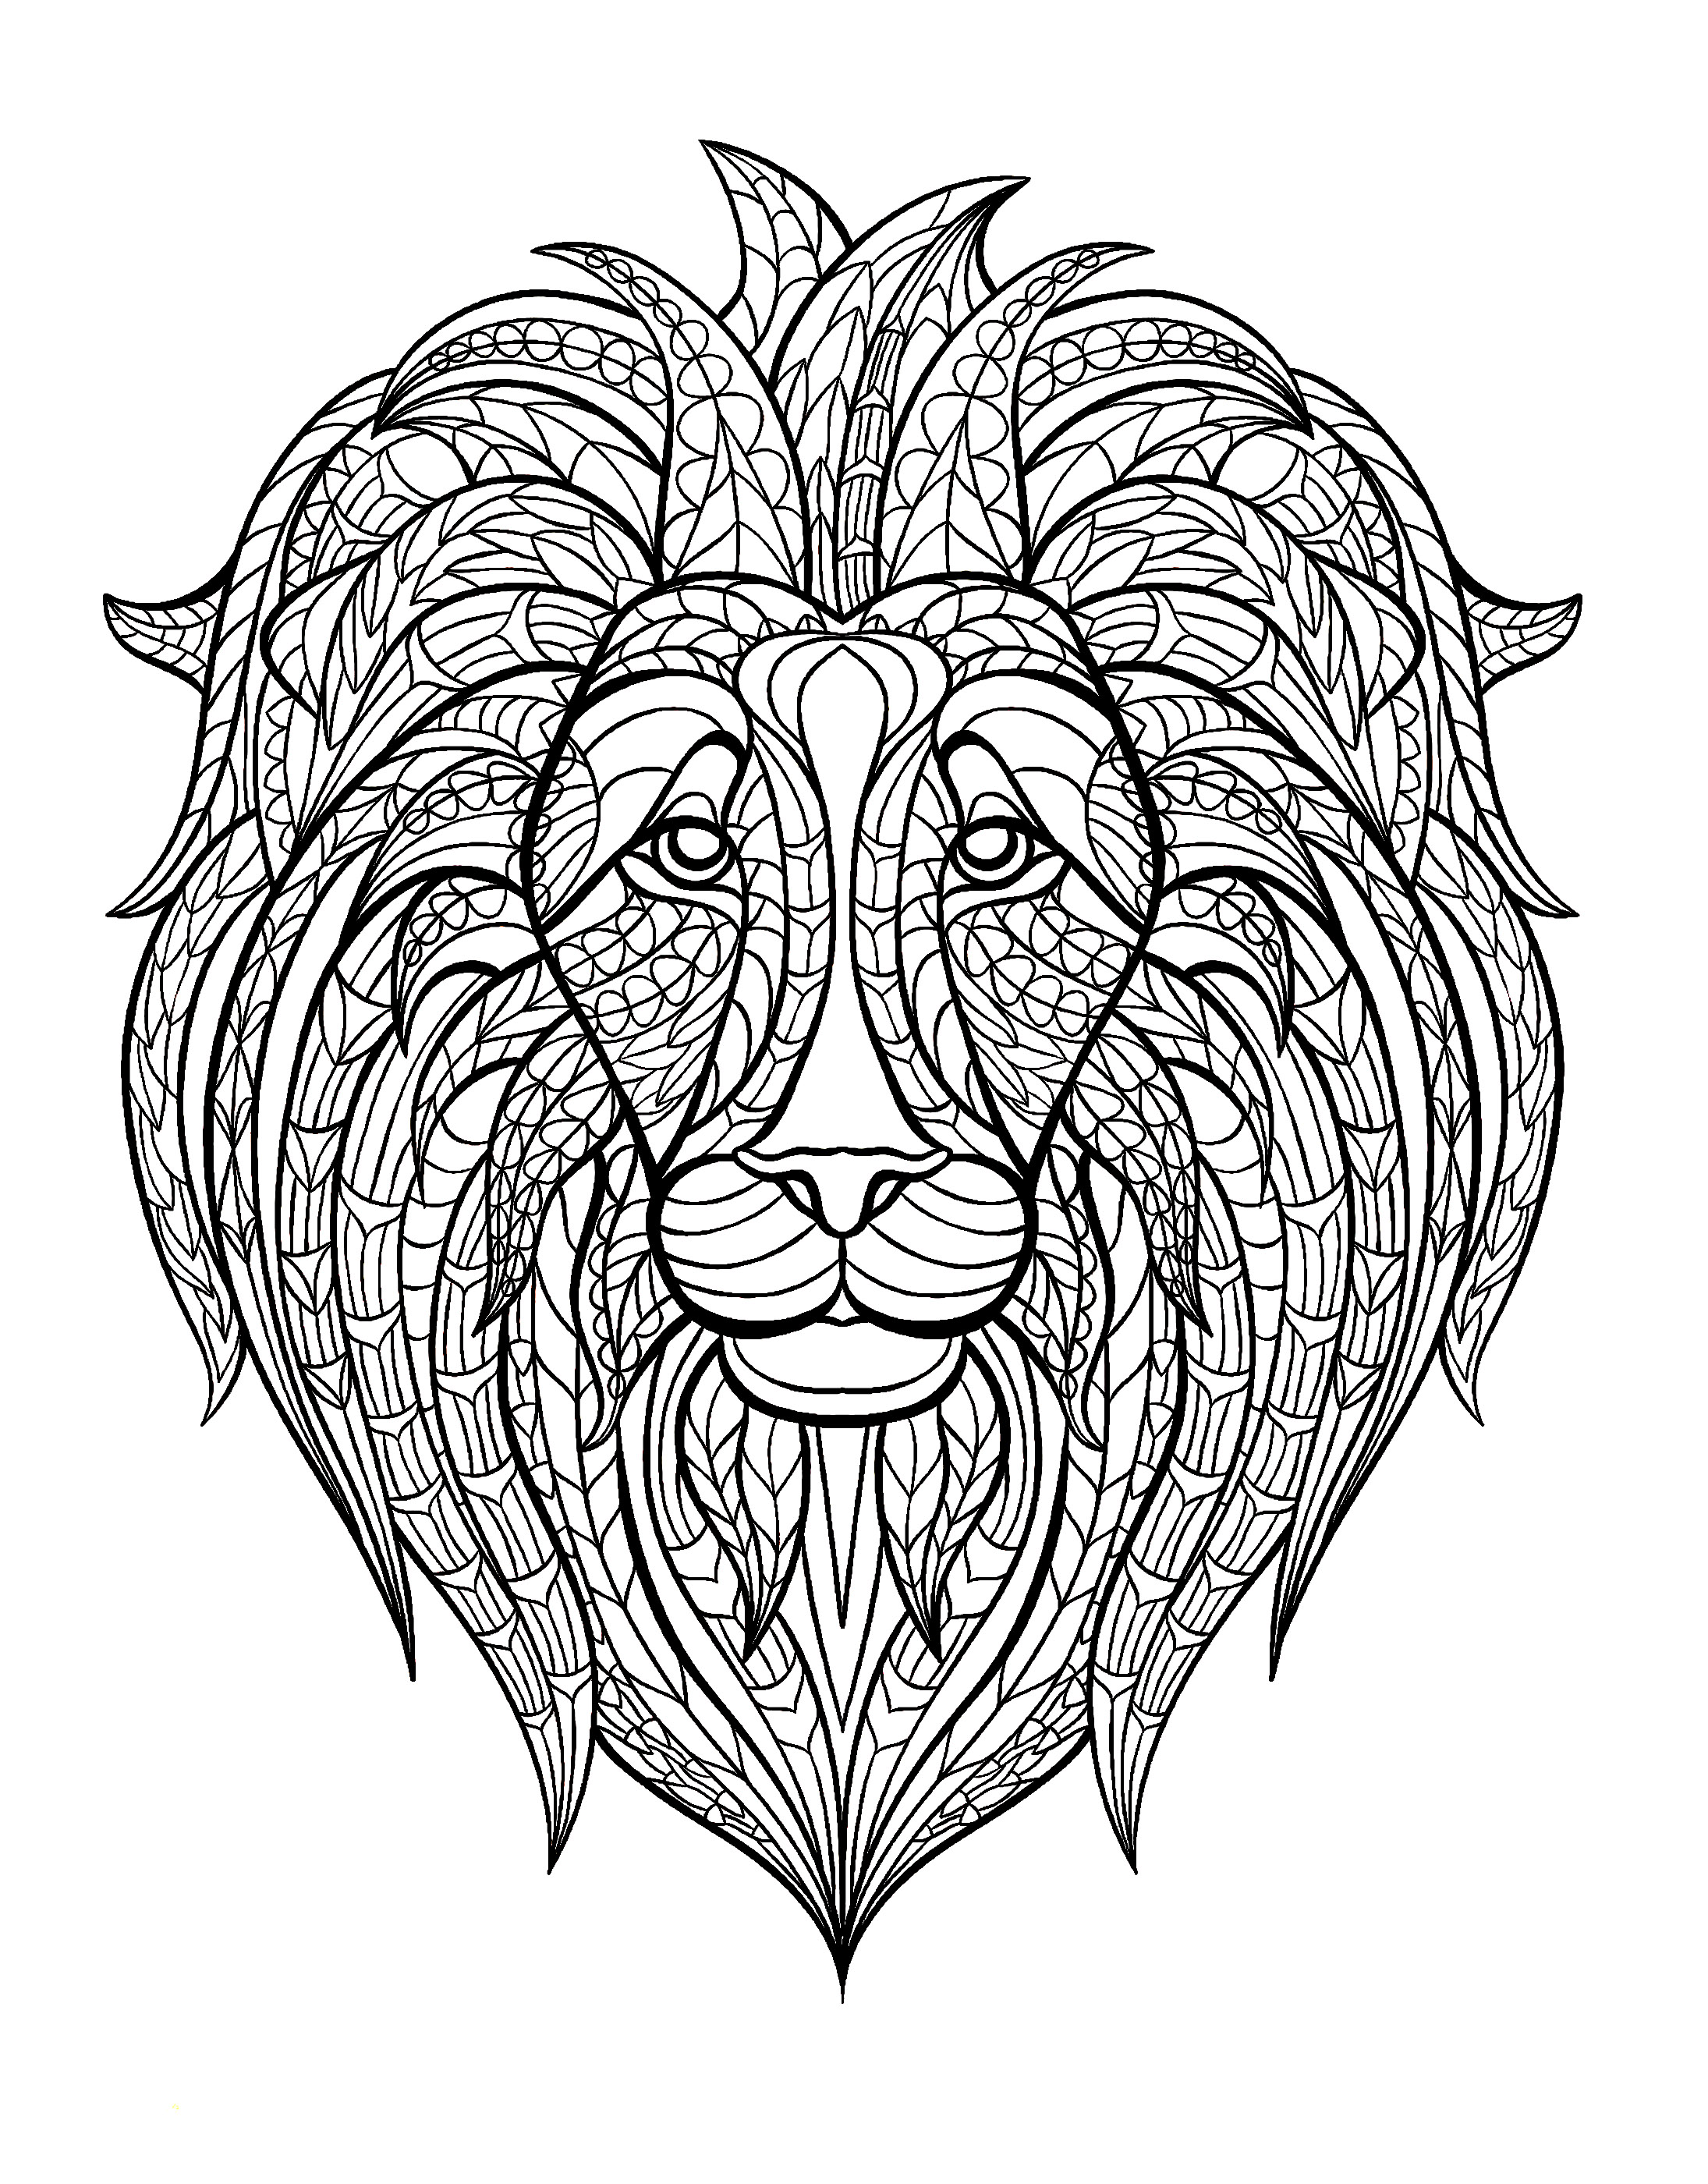 Coloring pictures for adults - Coloring Adult Lion Head Free To Print